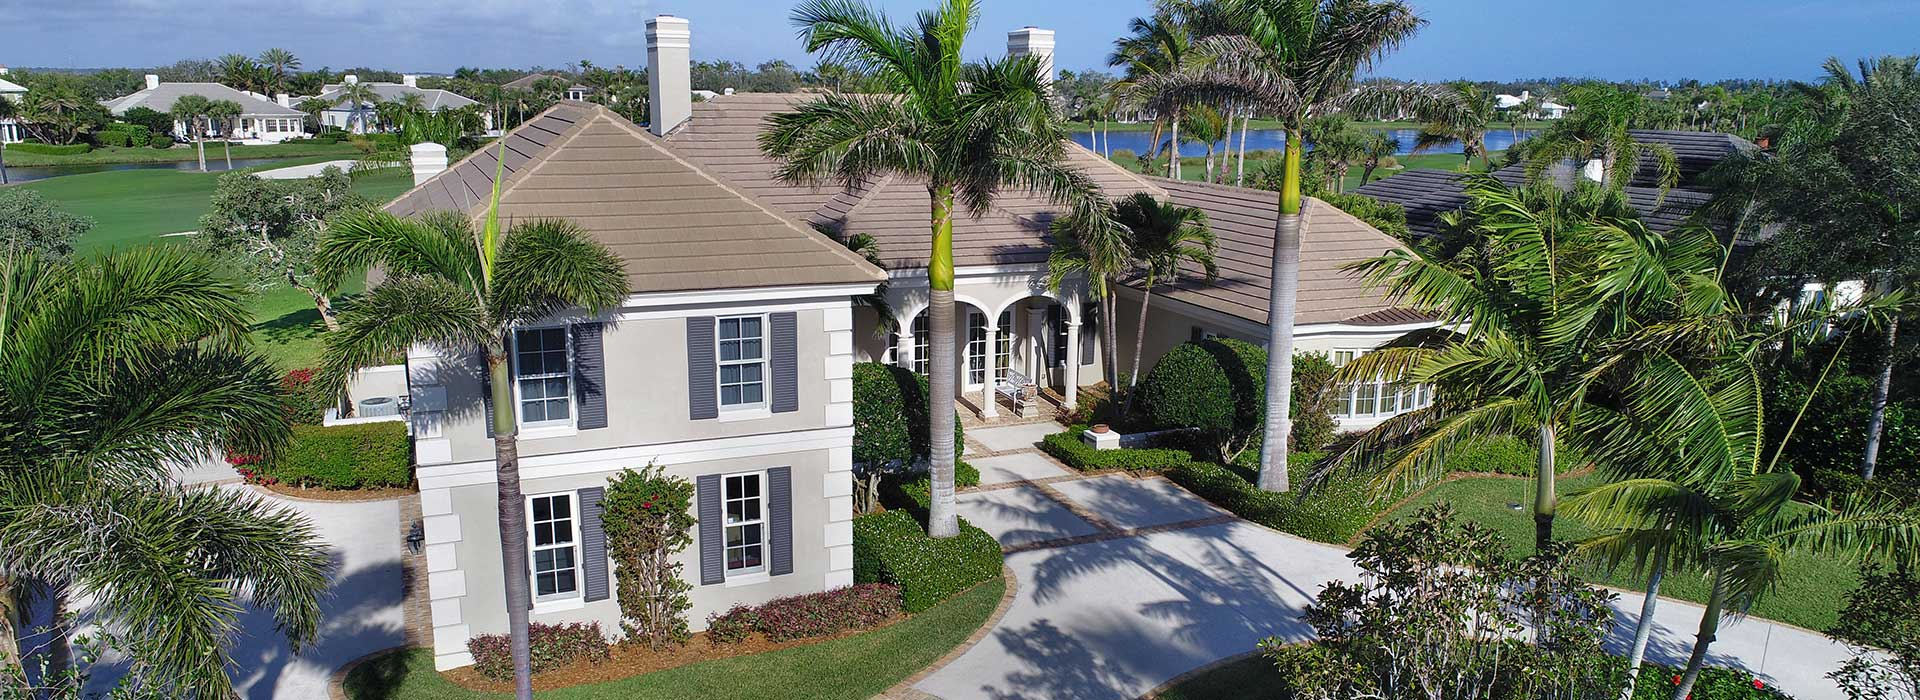 Estate Home at Orchid Island